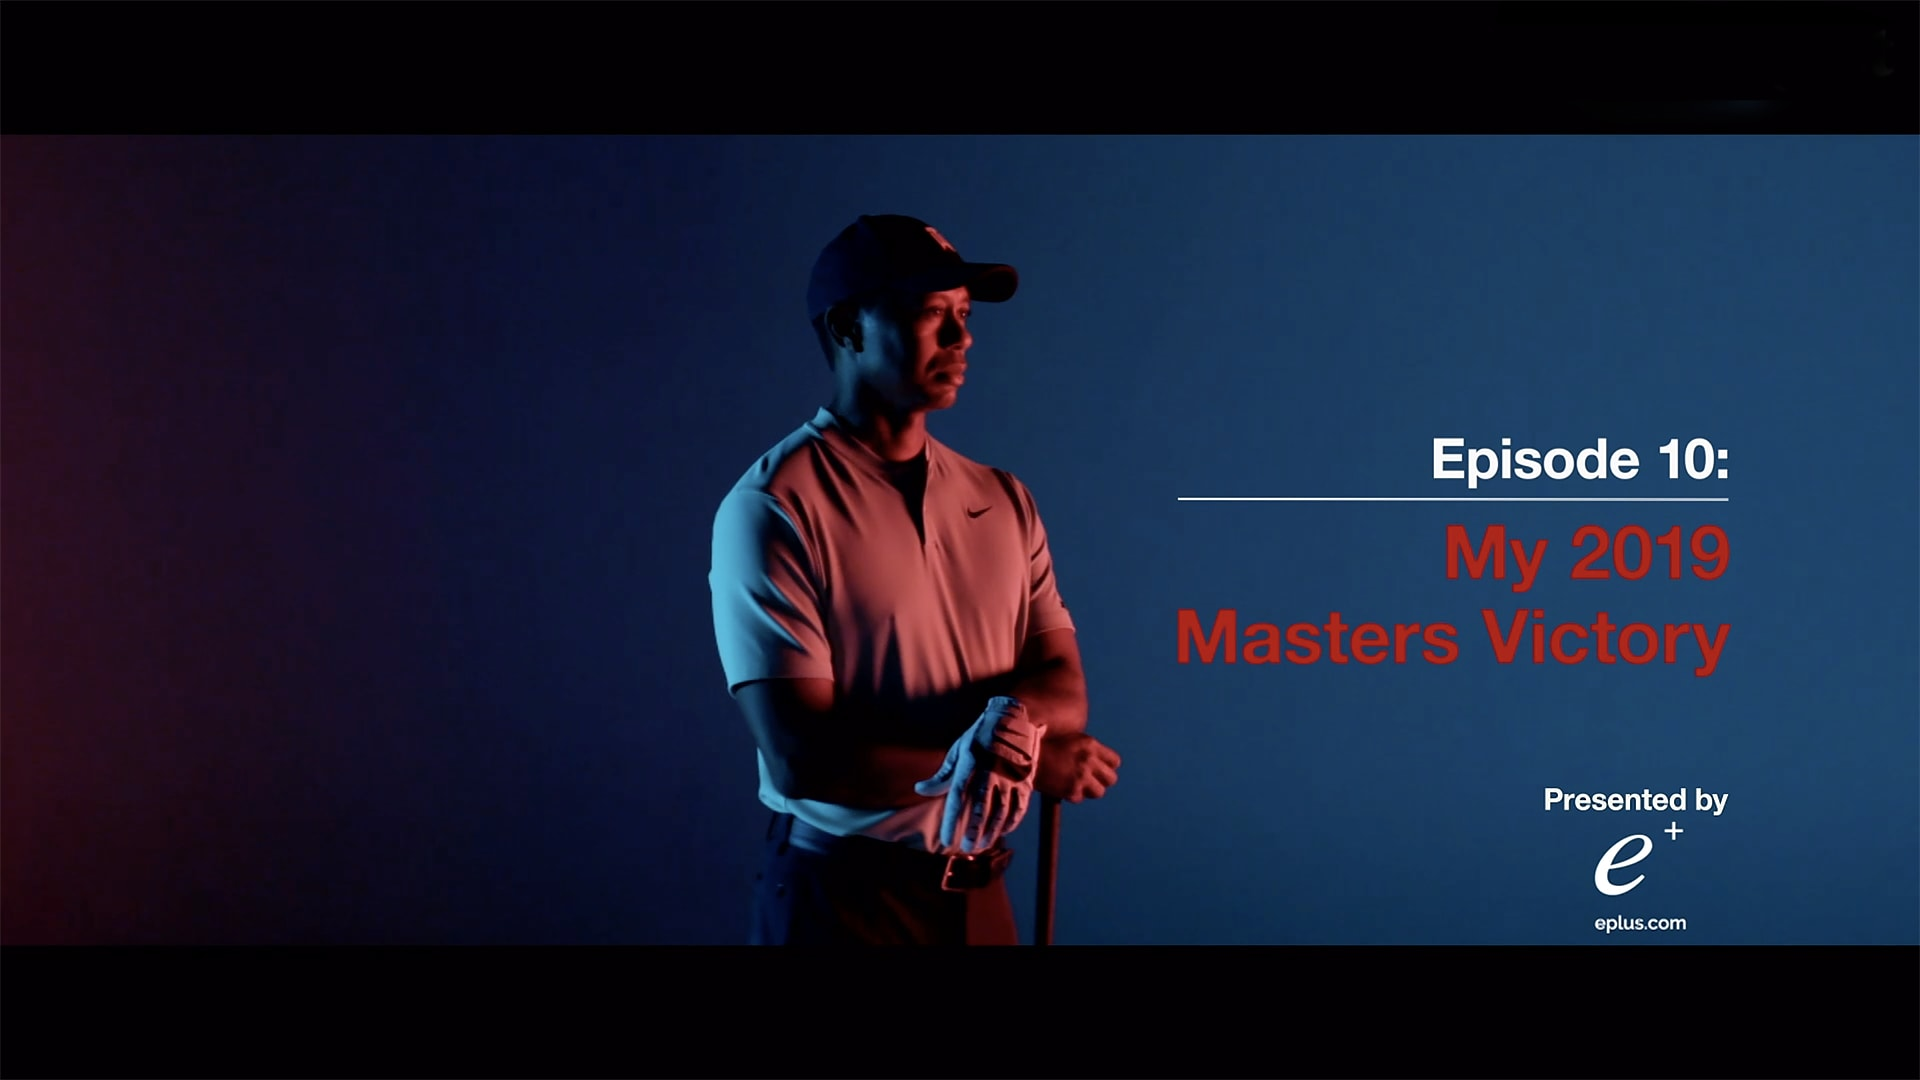 My Game: Tiger Woods – Episode 10: My 2019 Masters